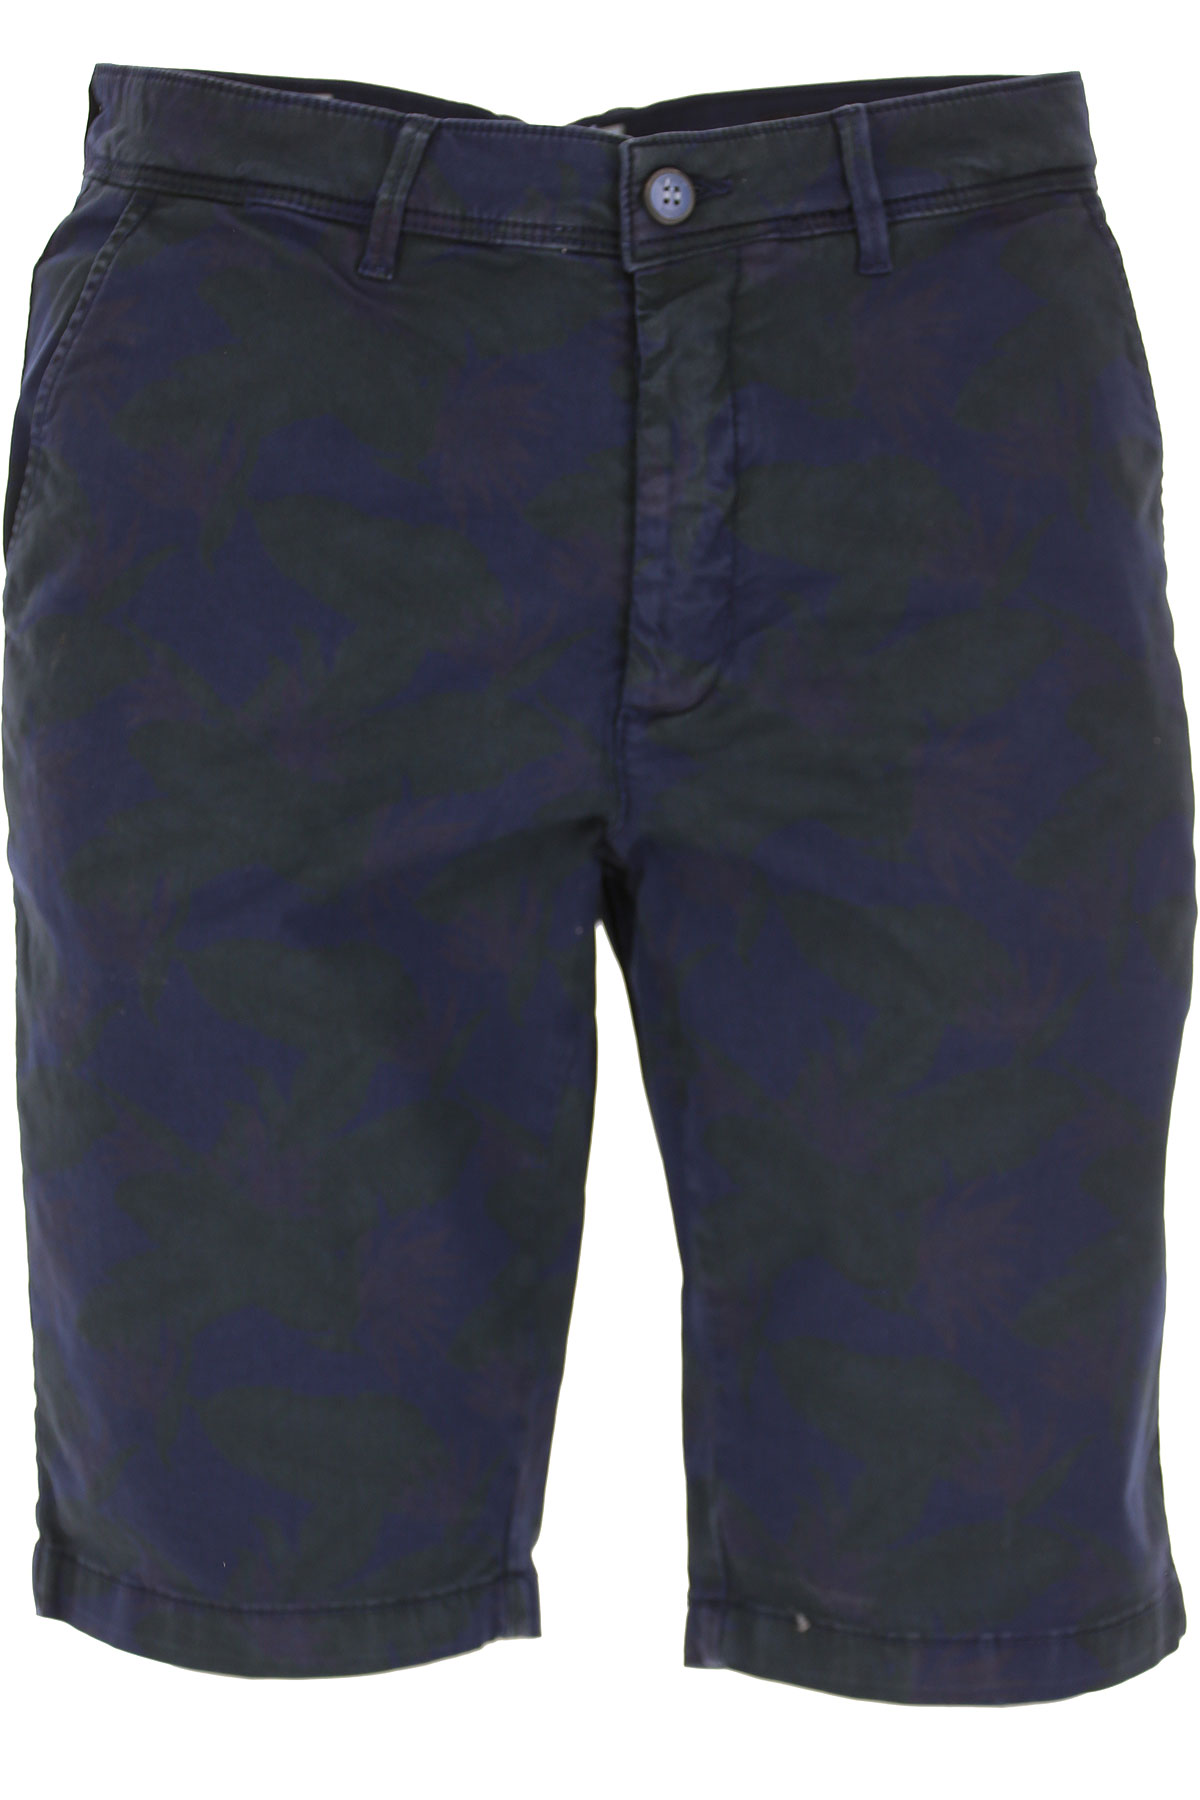 Image of Bomboogie Shorts for Men On Sale, Dark Blue, Cotton, 2017, 30 34